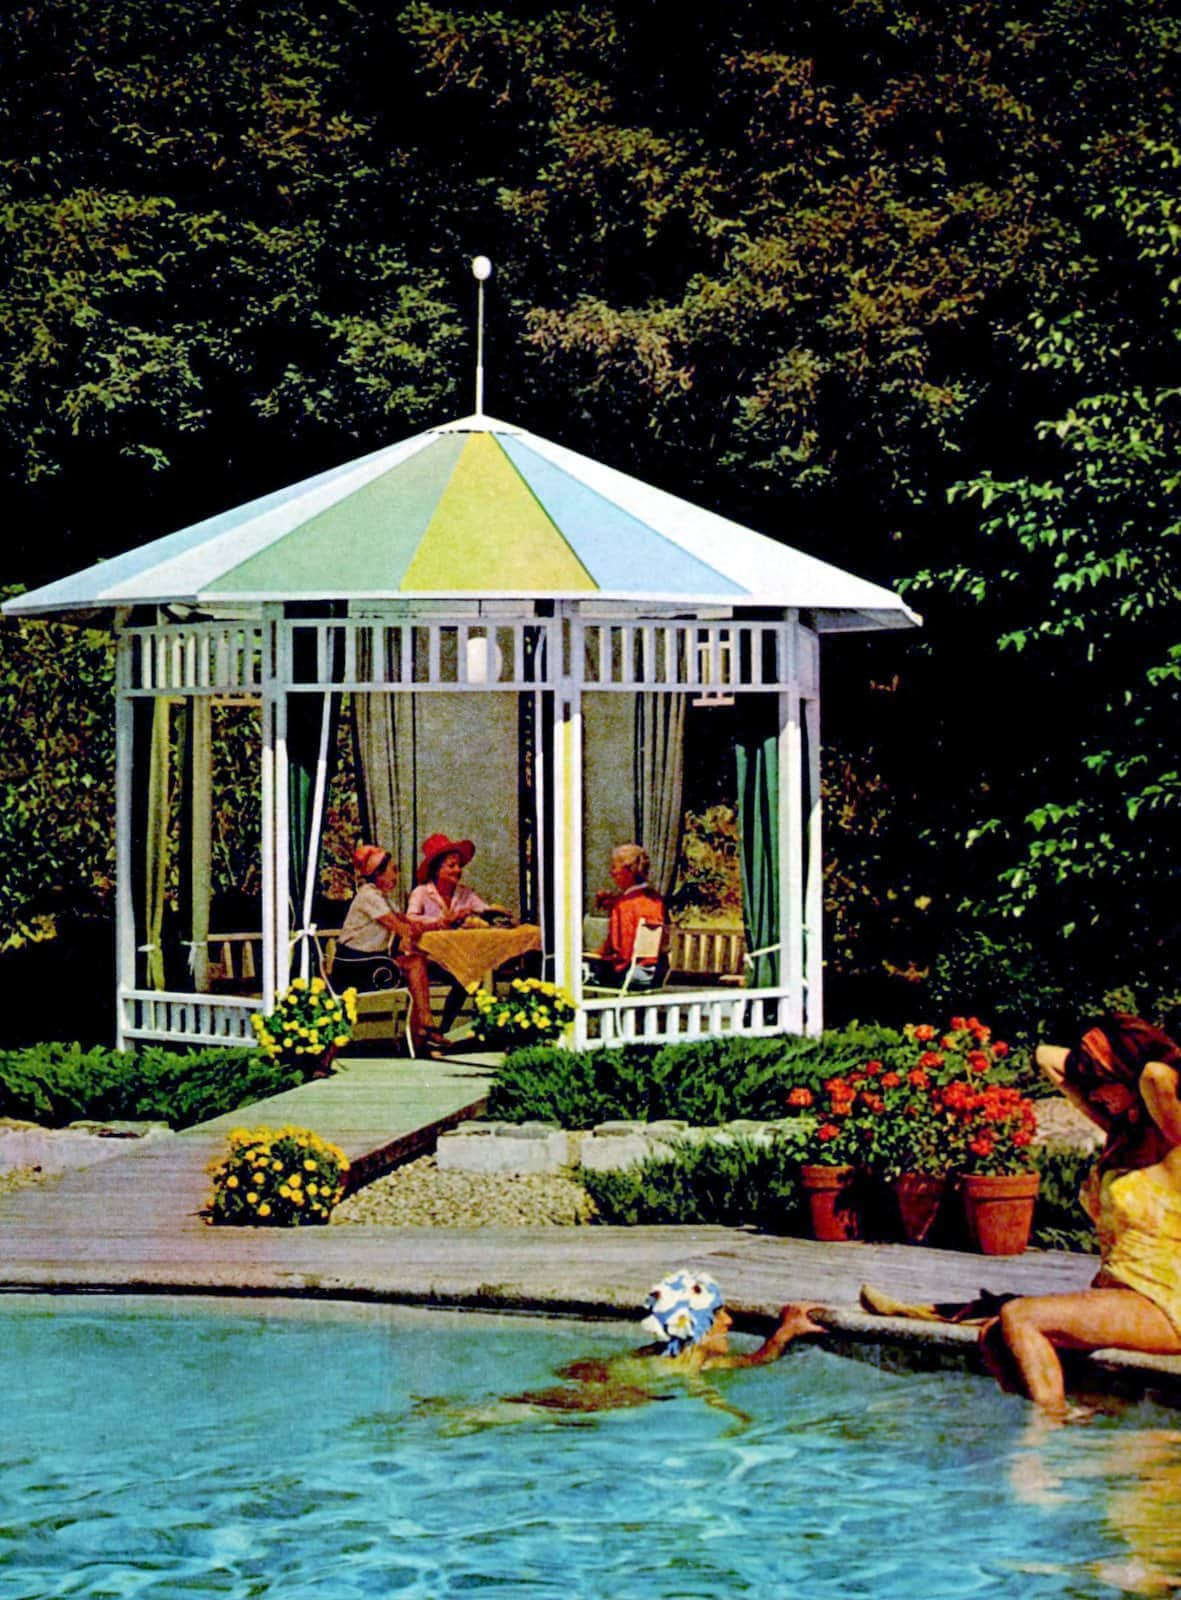 Cute white backyard pavilion by the pool from 1967